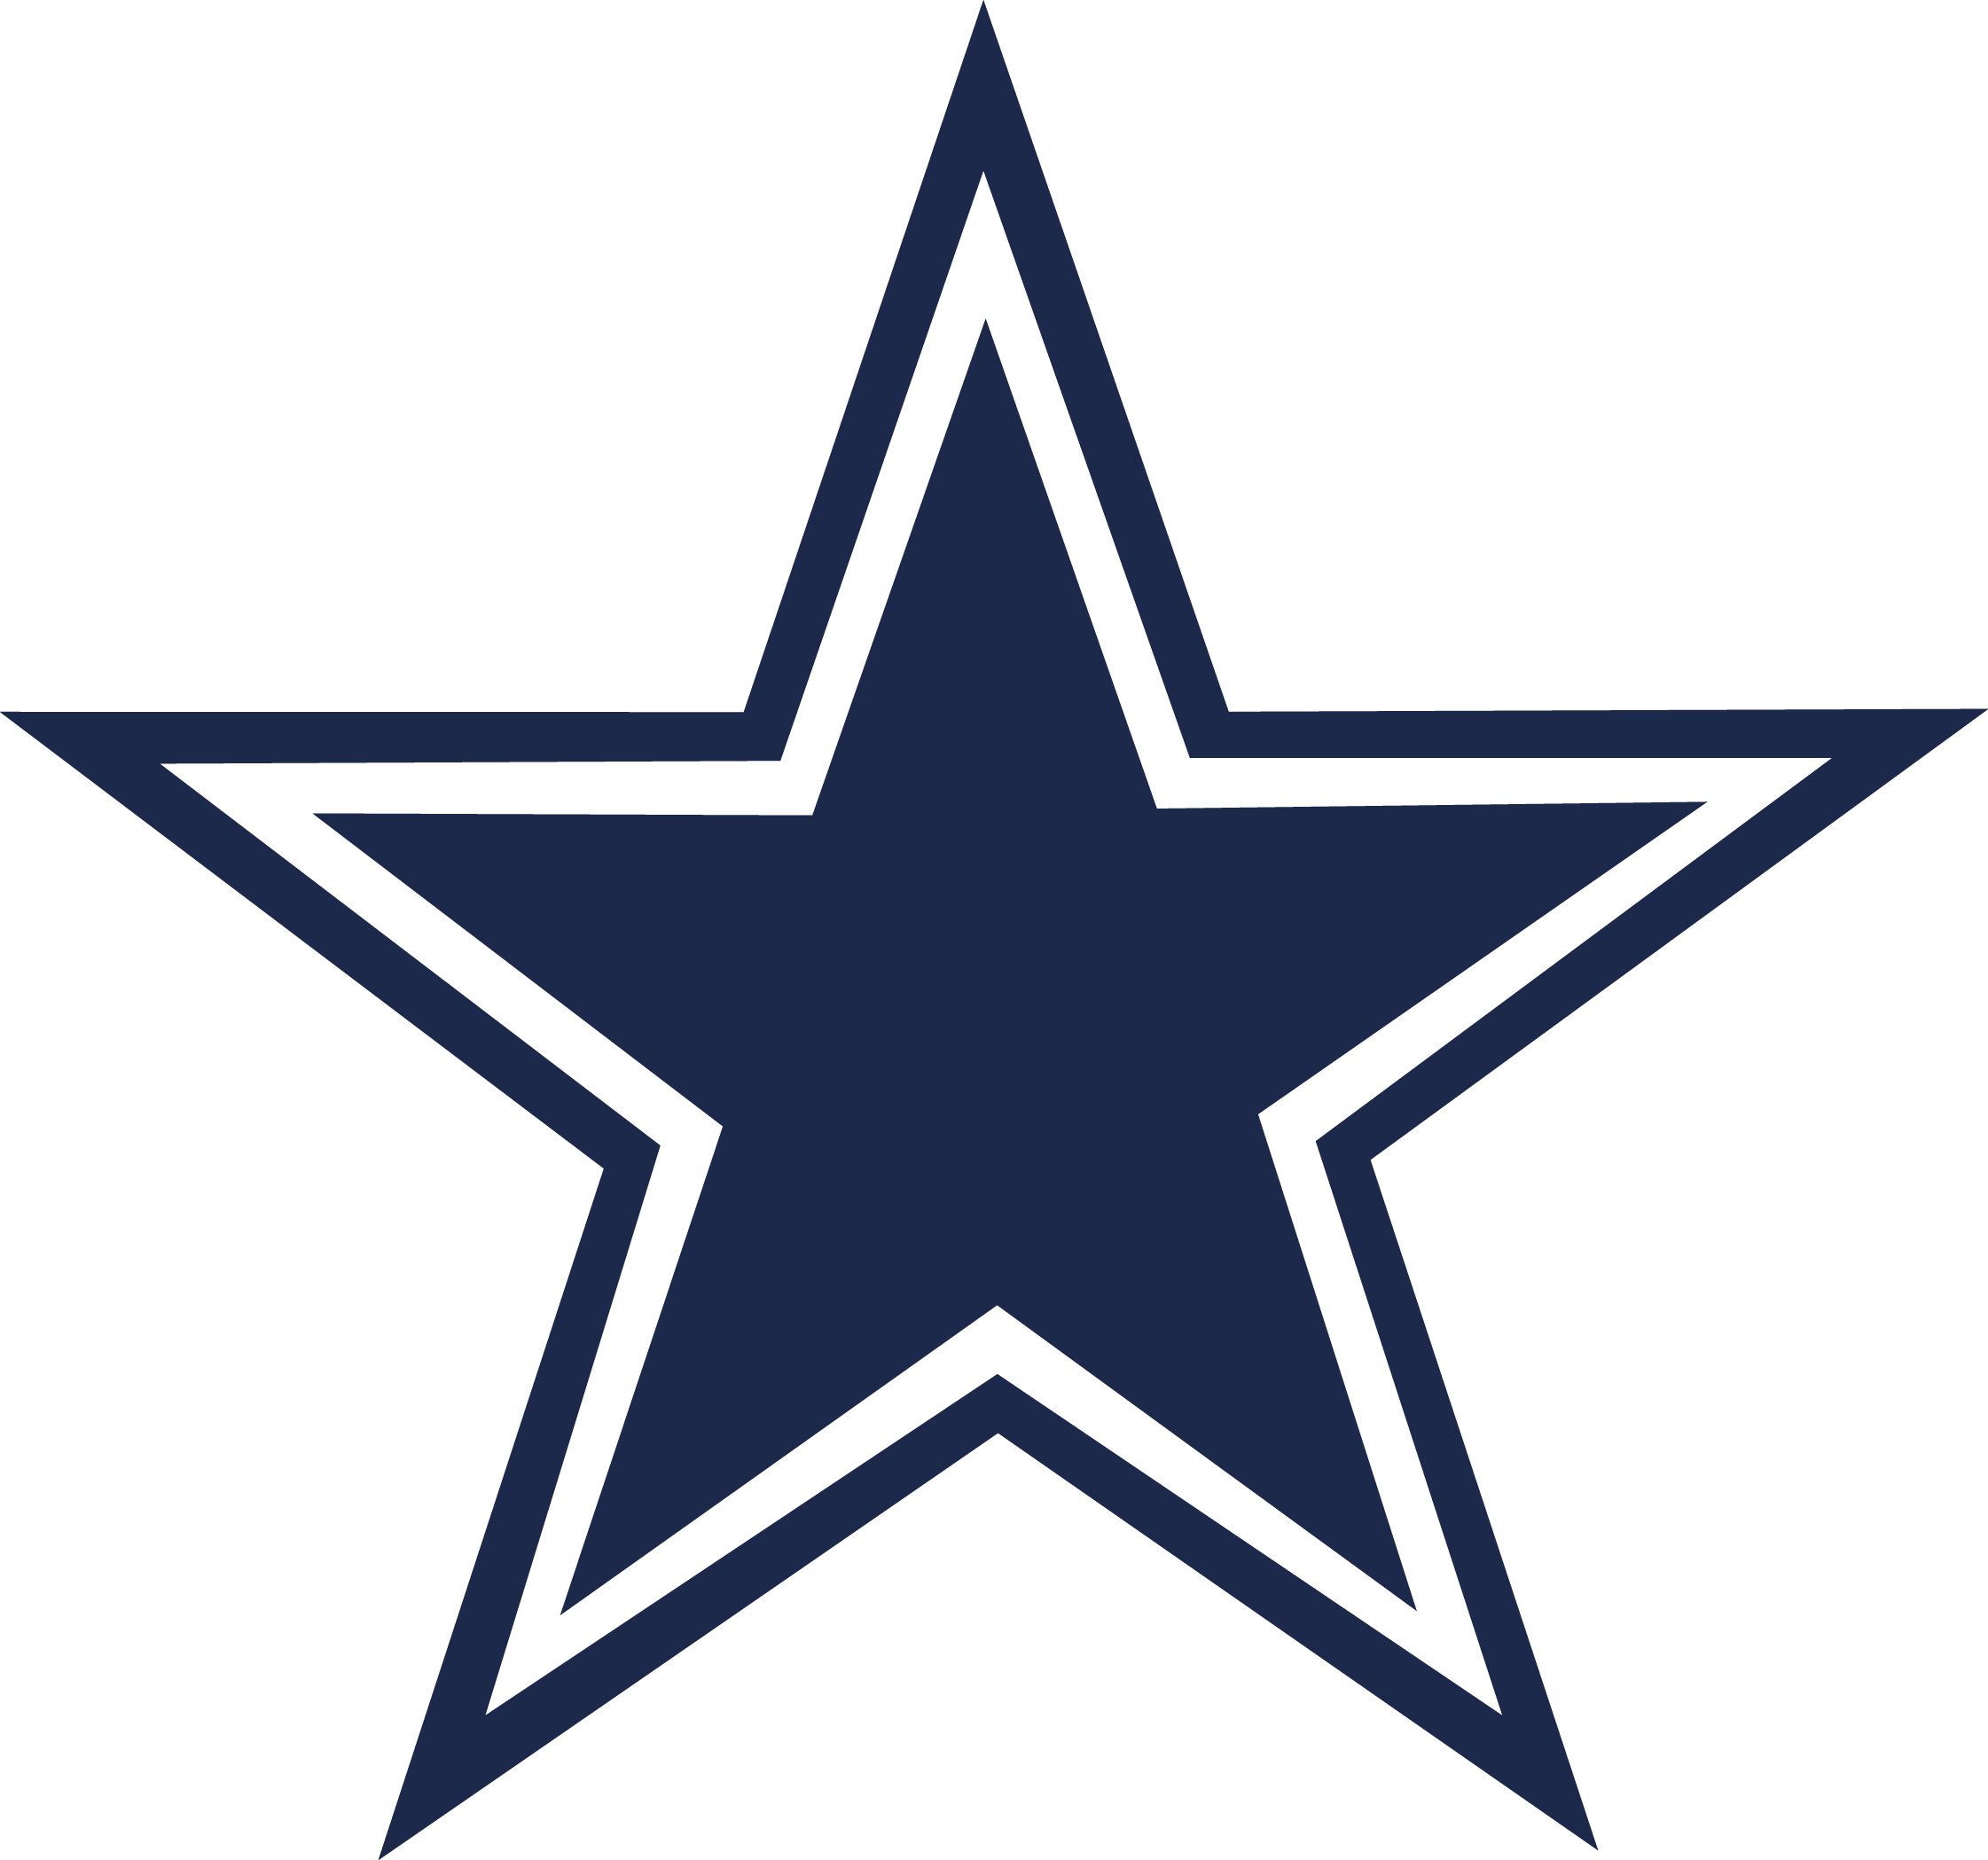 Dallas Cowboys Logo Vector EPS Free Download, Logo, Icons, Brand Emblems